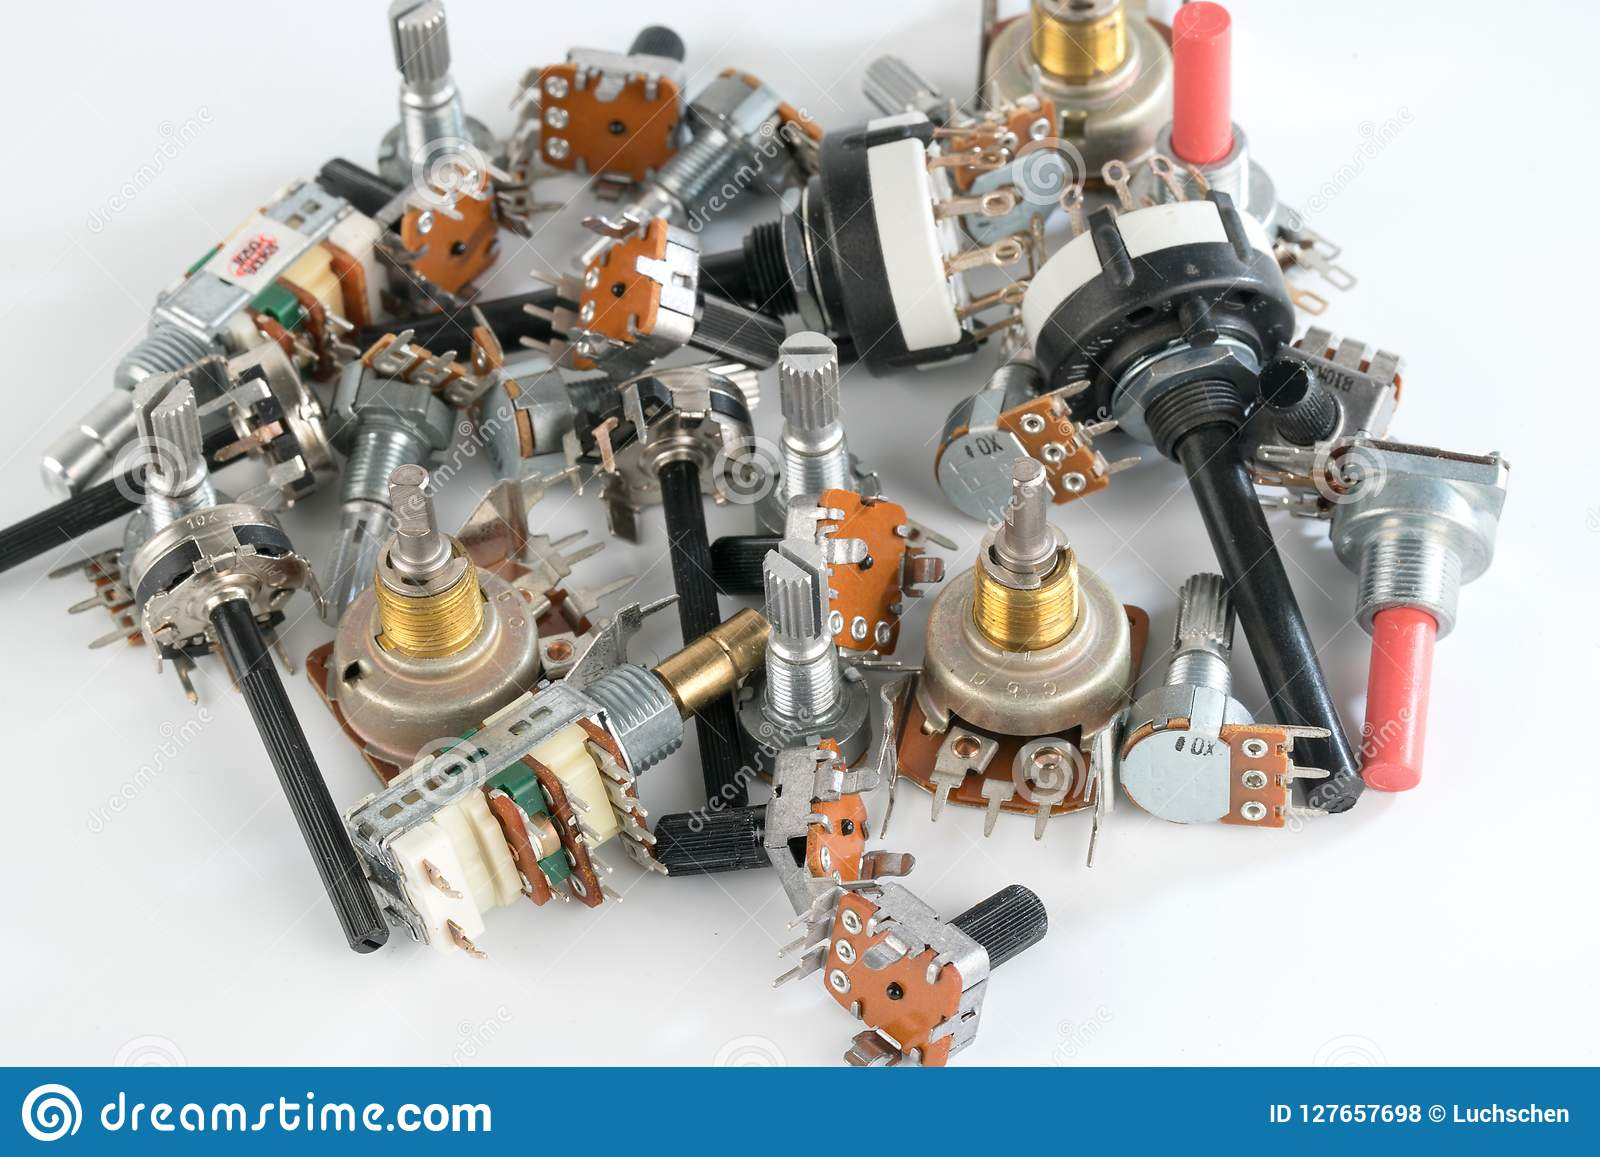 Different Radio Electronic Components Stock Photo - Image of